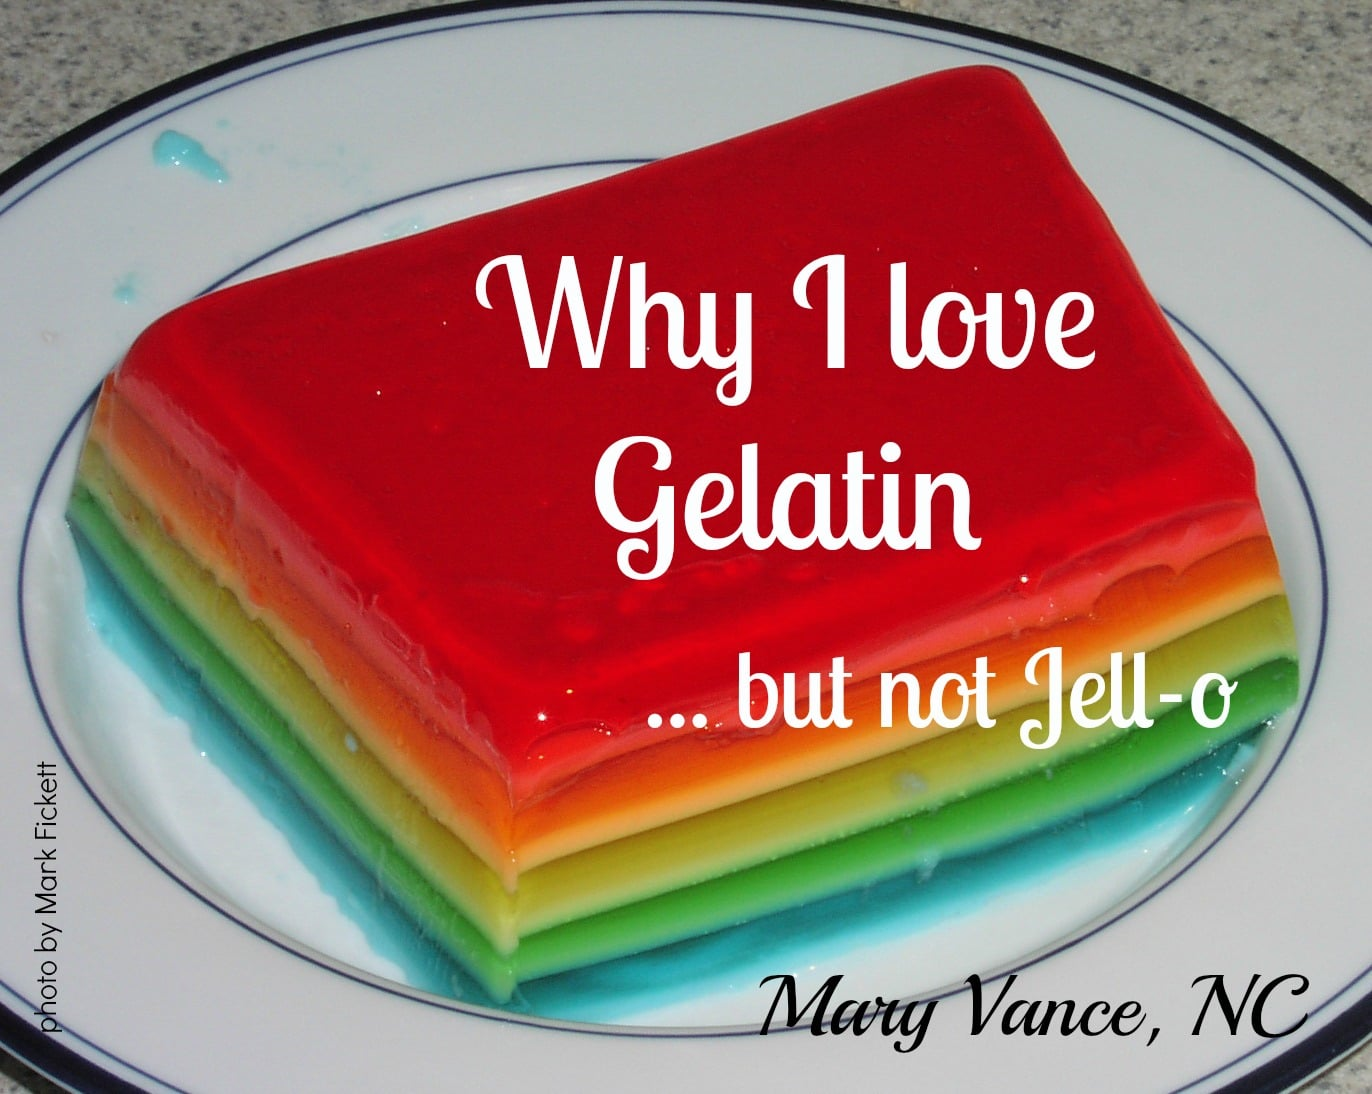 Why I Love Gelatin (but not Jell-o) - Mary Vance, NC